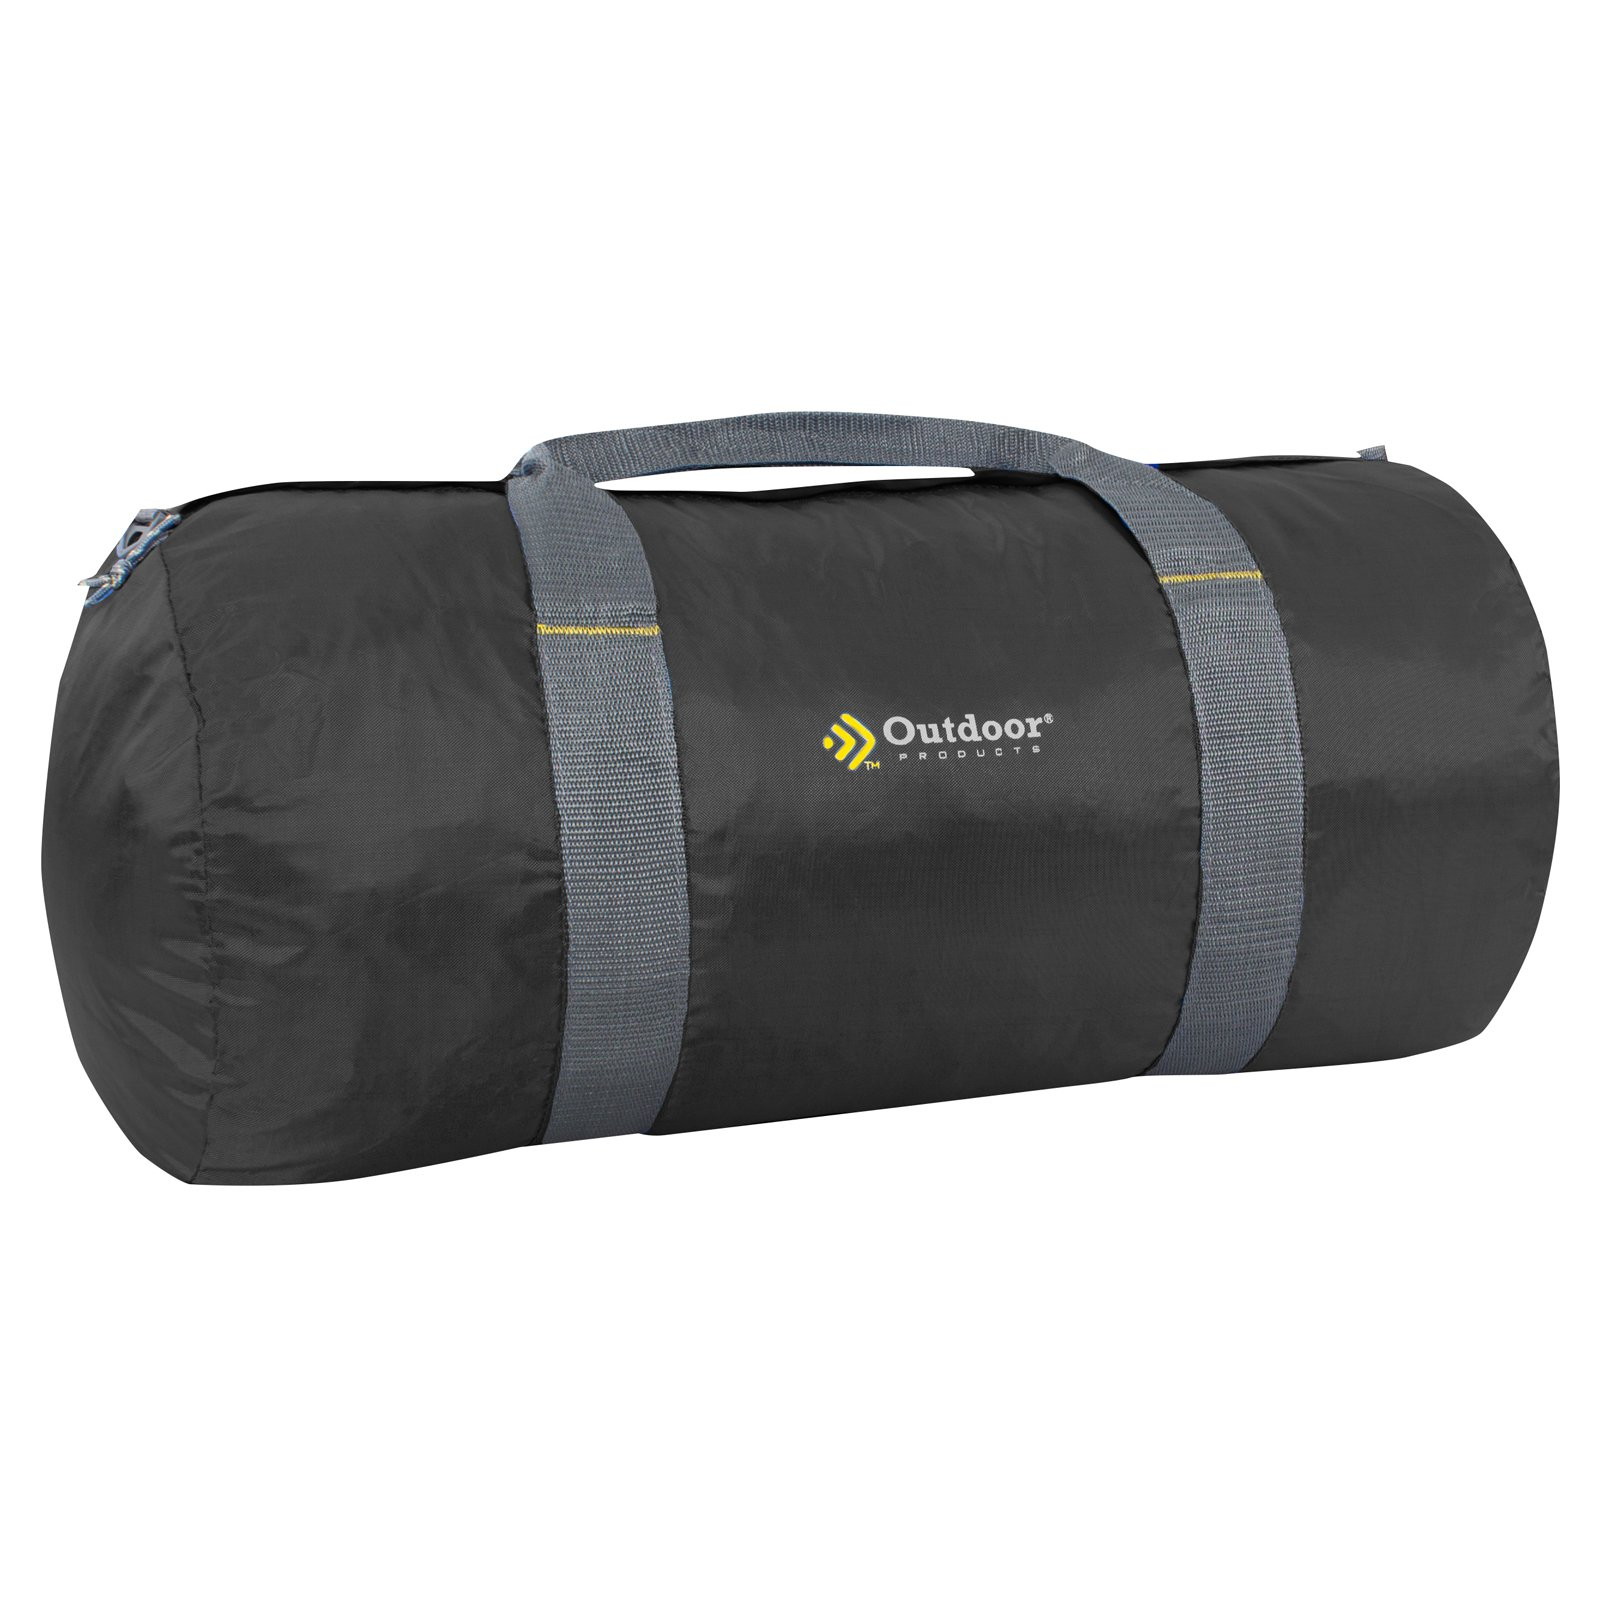 Outdoor Products Medium Deluxe Duffle by Outdoor Products